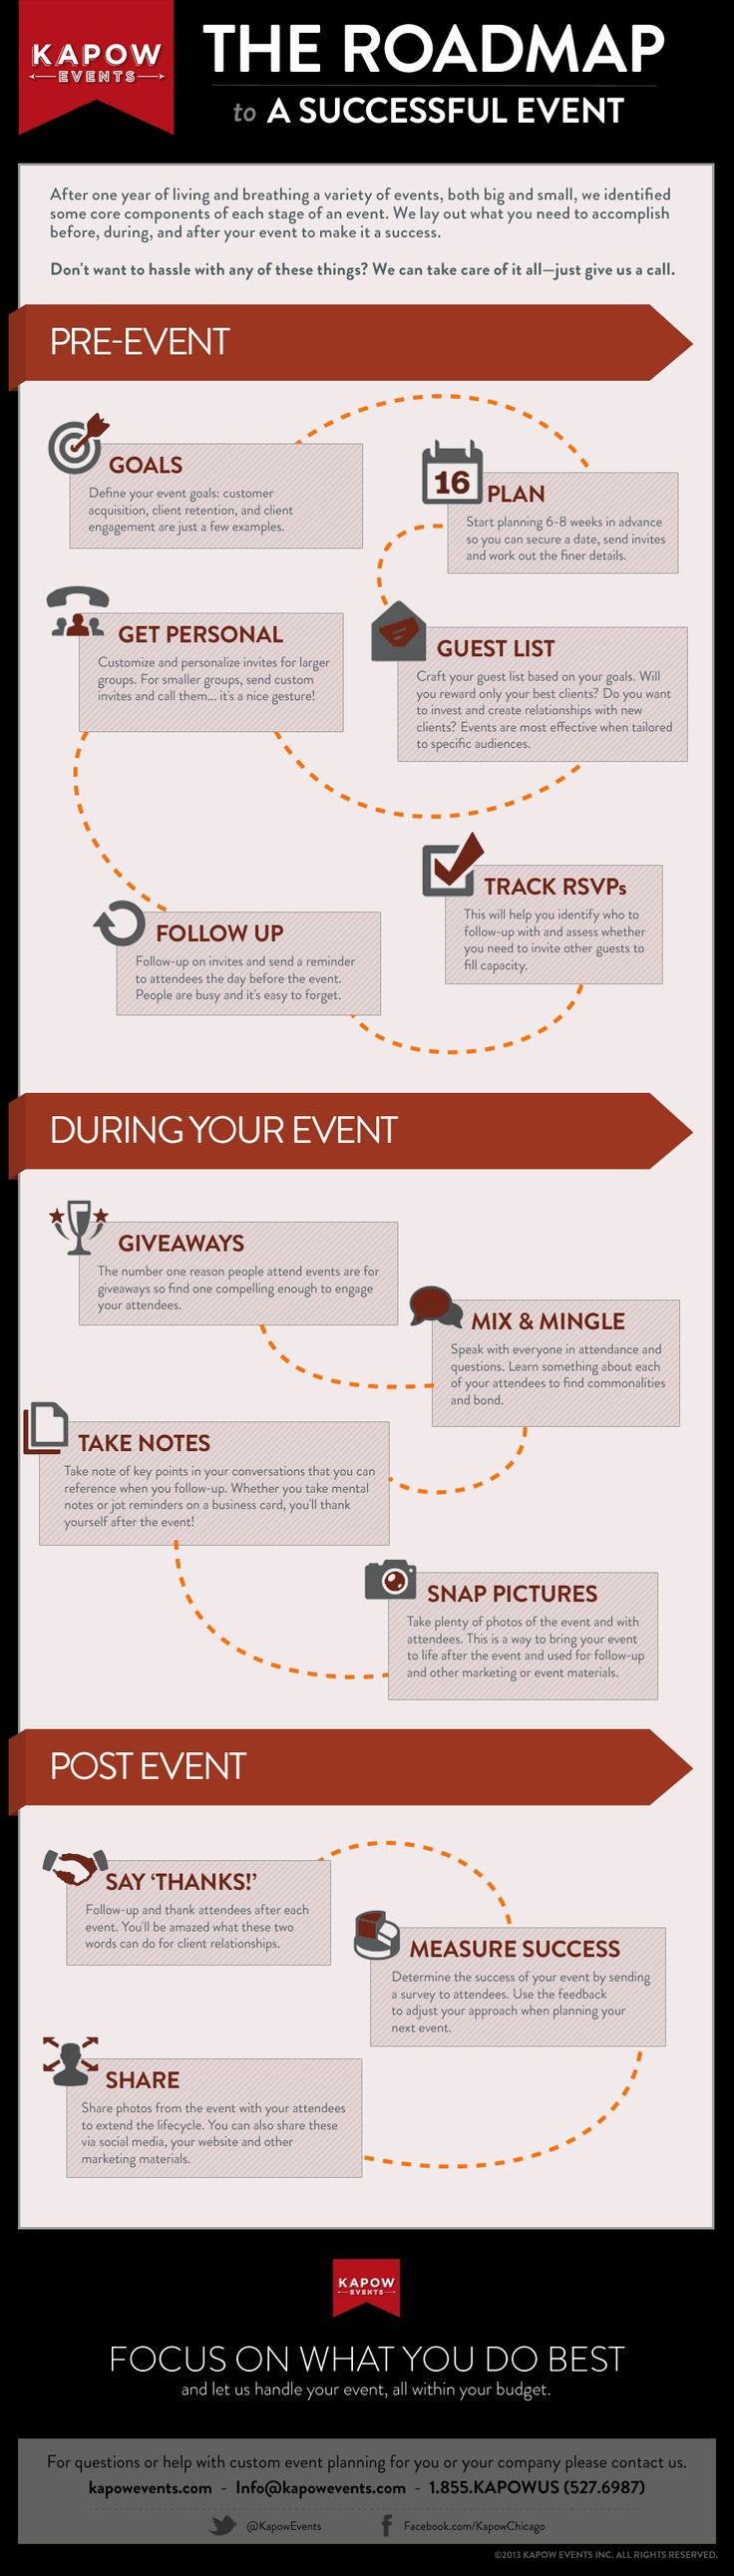 After one year of living and breathing a variety of events, both big and small, Kapow Events identified some core components of each stage of an event